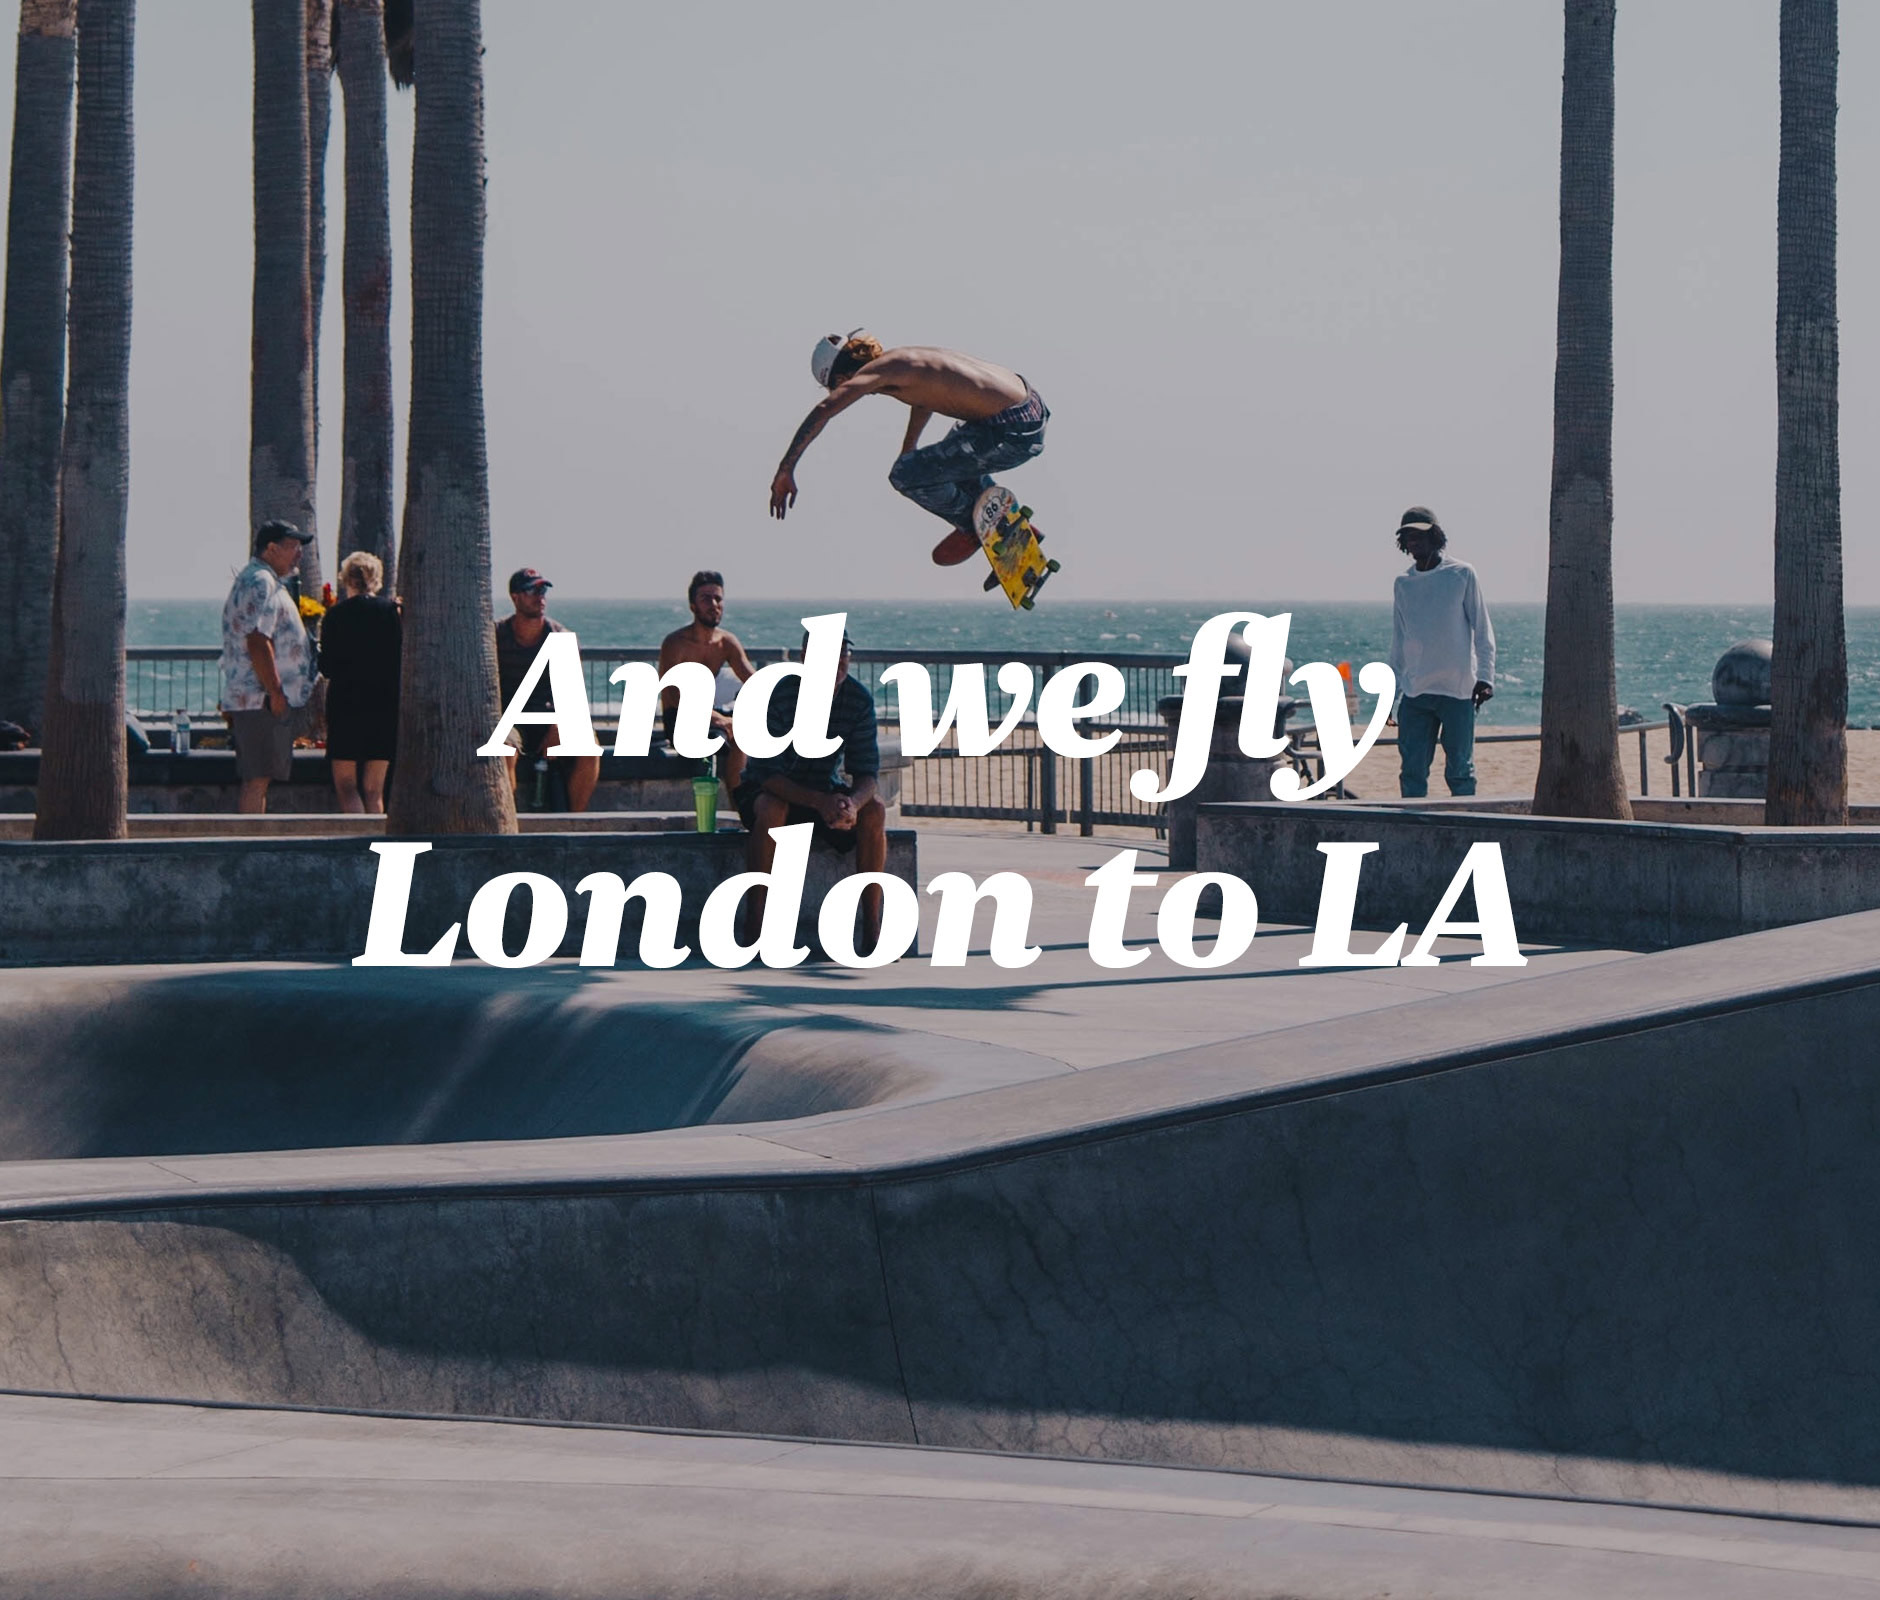 Bet You Didn't Know LA Story